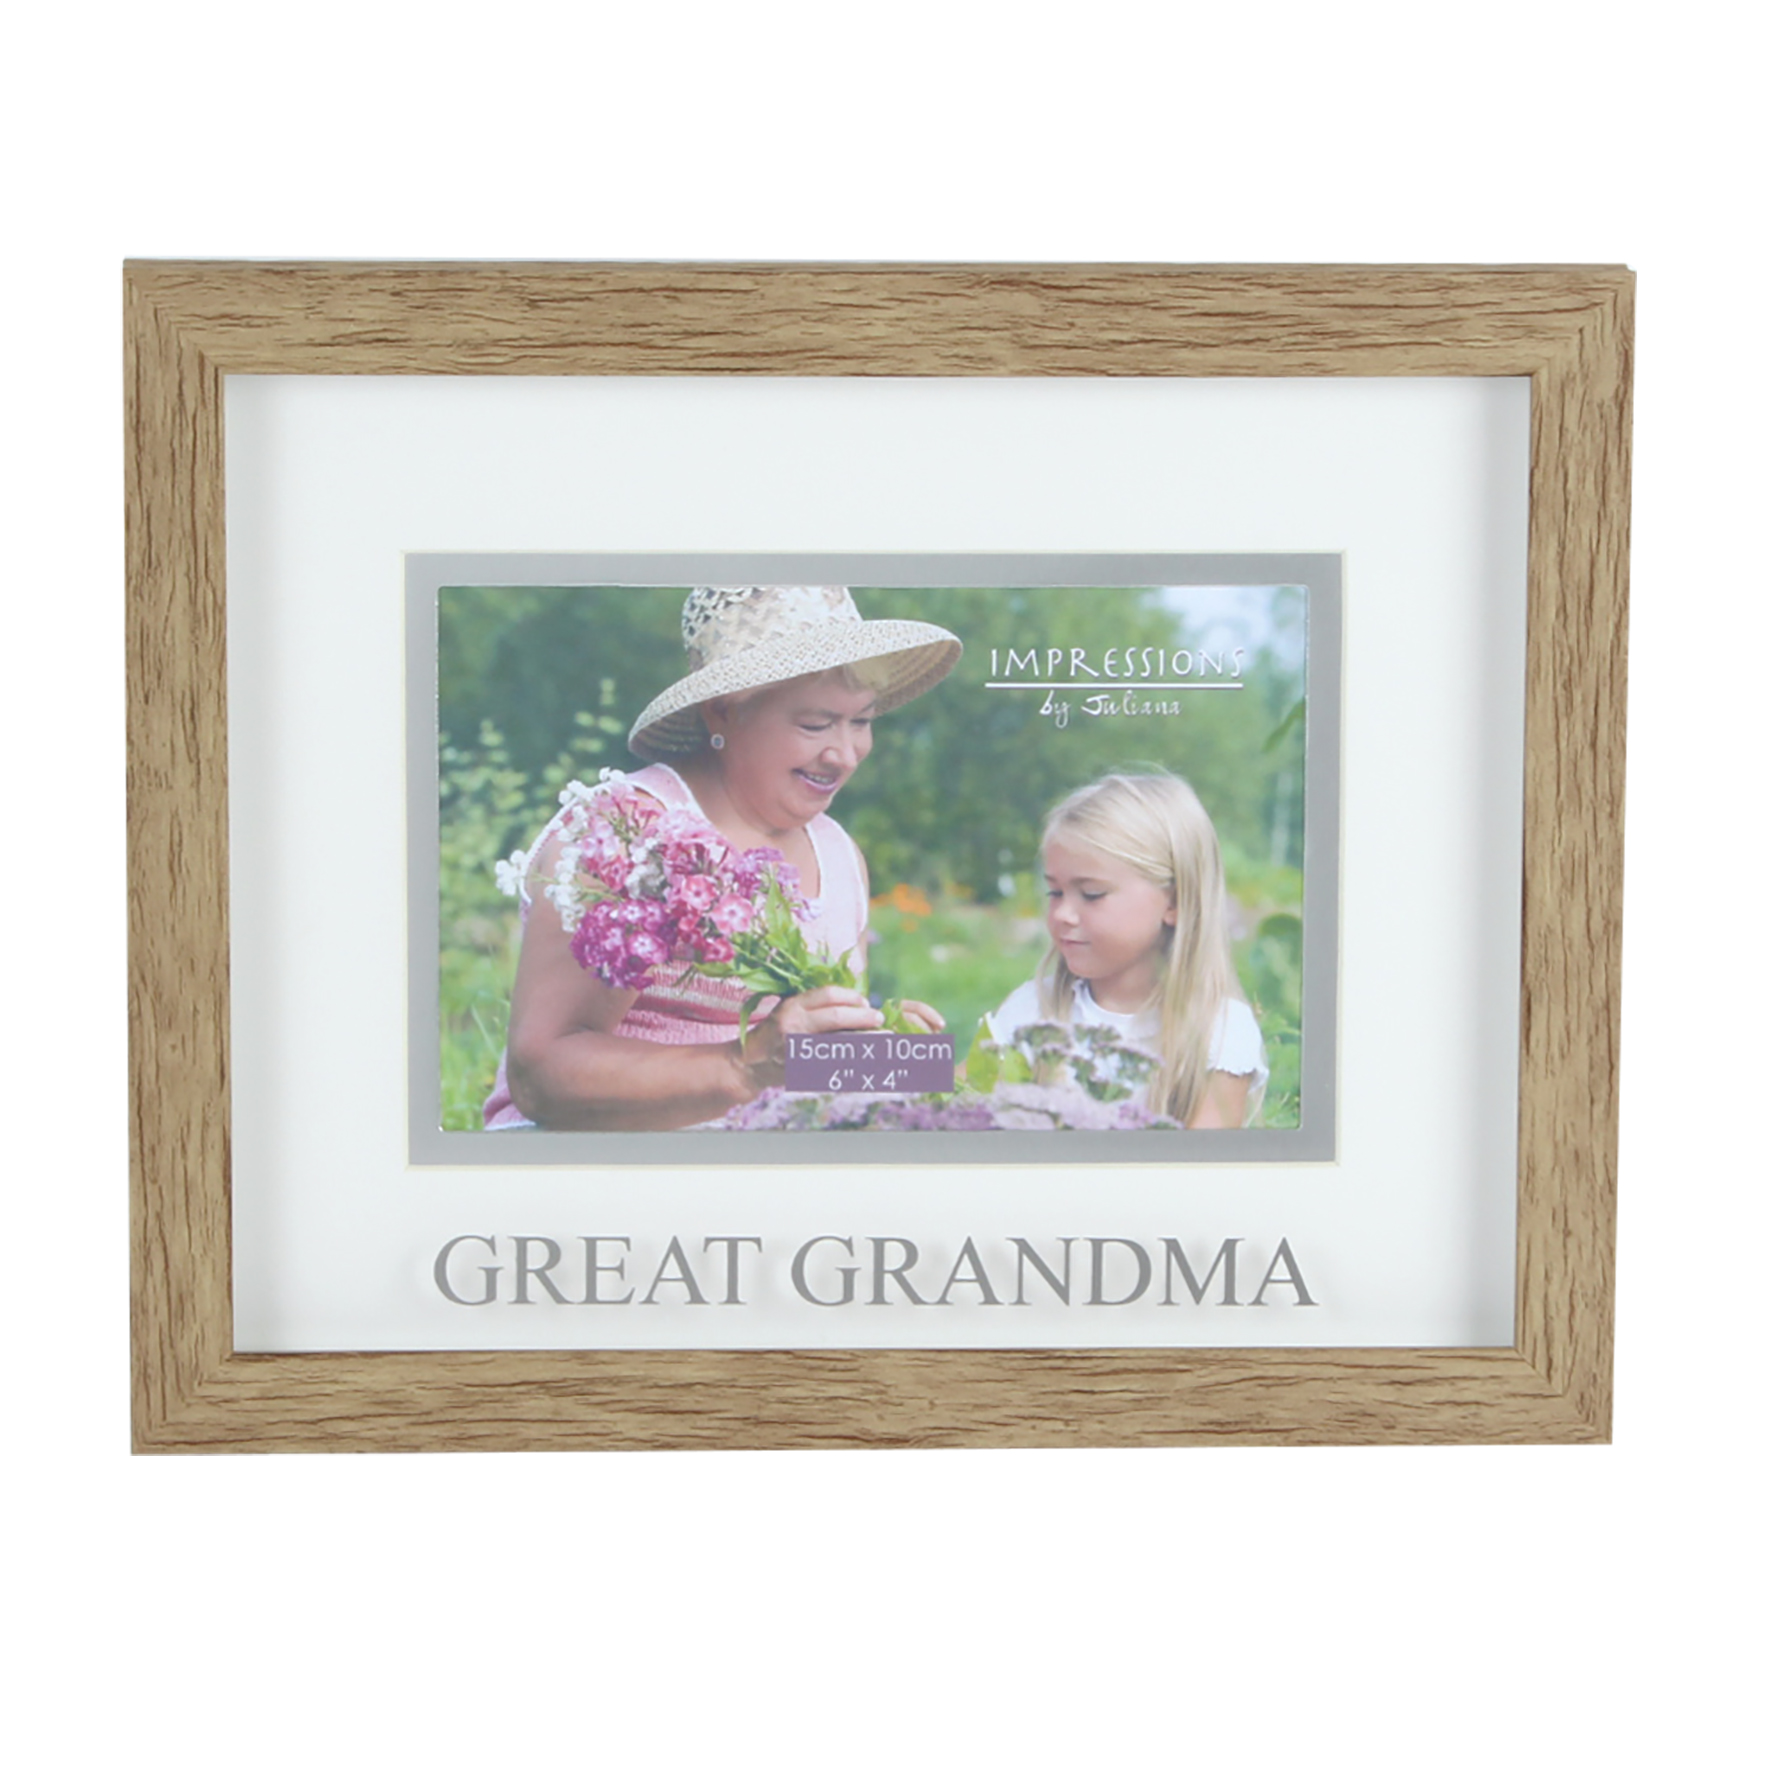 Juliana Great Grandma Natural Wood Effect Photo Frame | Gifts | Love ...